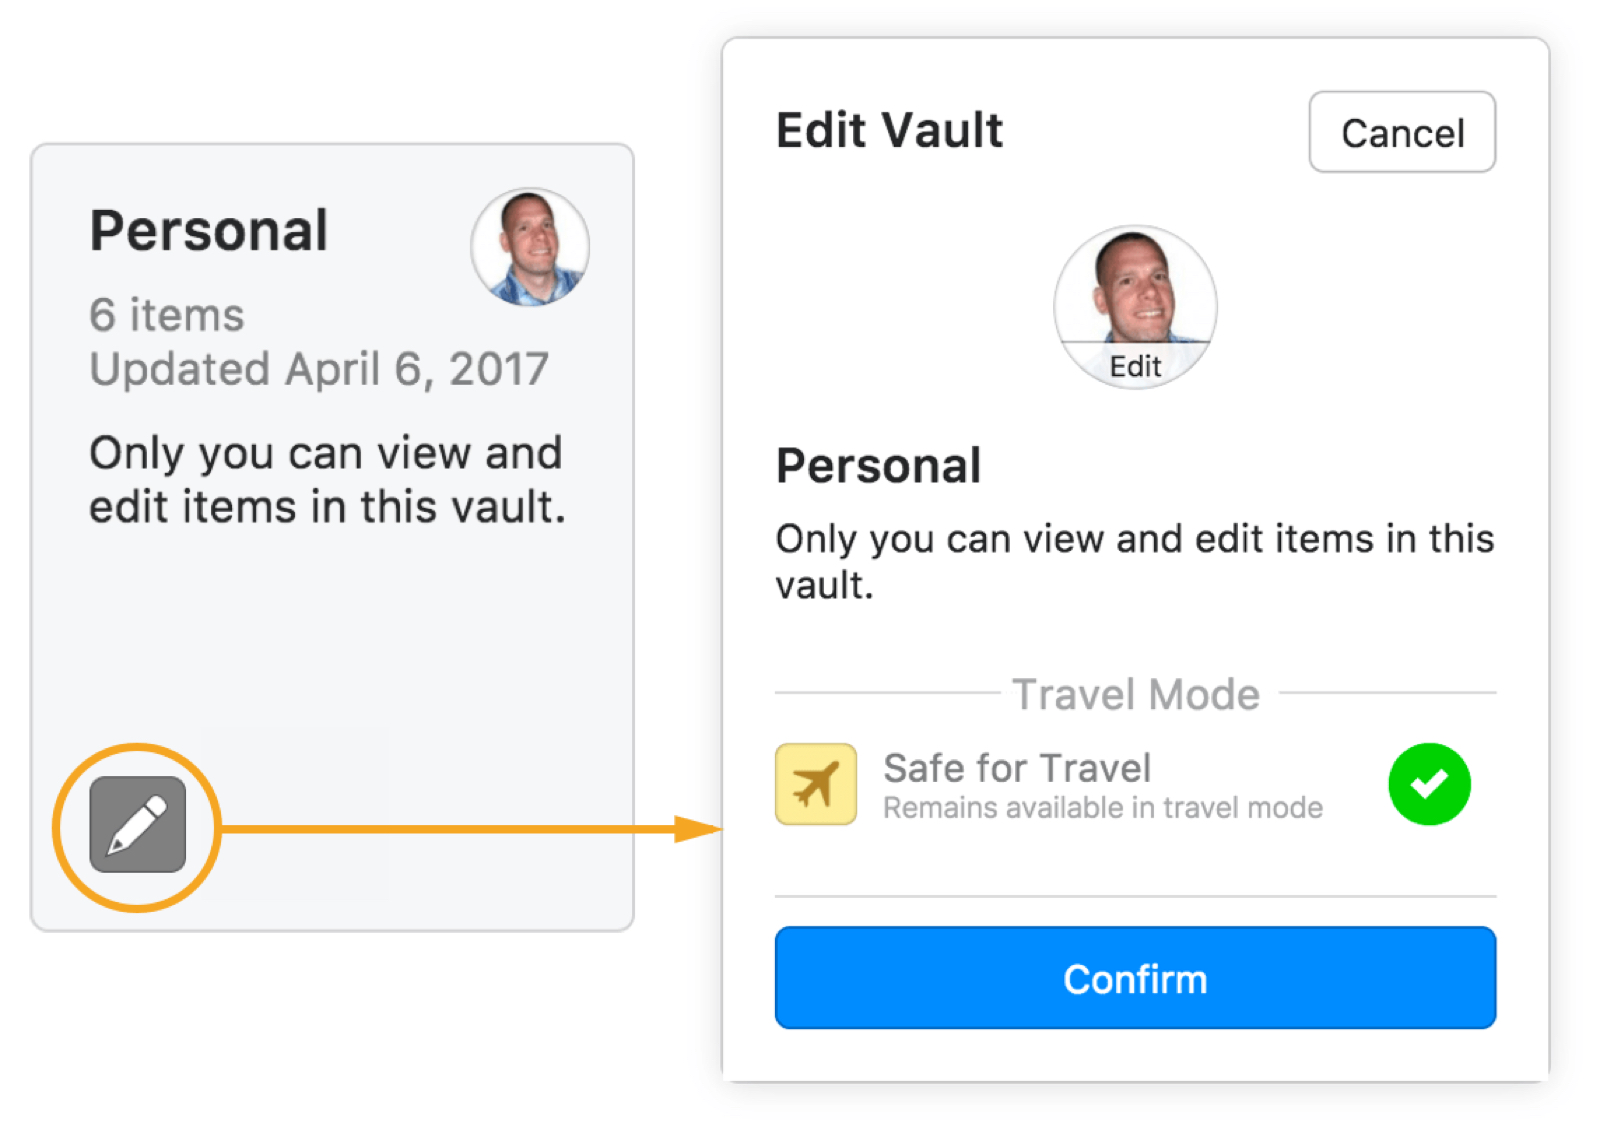 Example image to enable Safe for Travel for new 1Password Travel Mode.